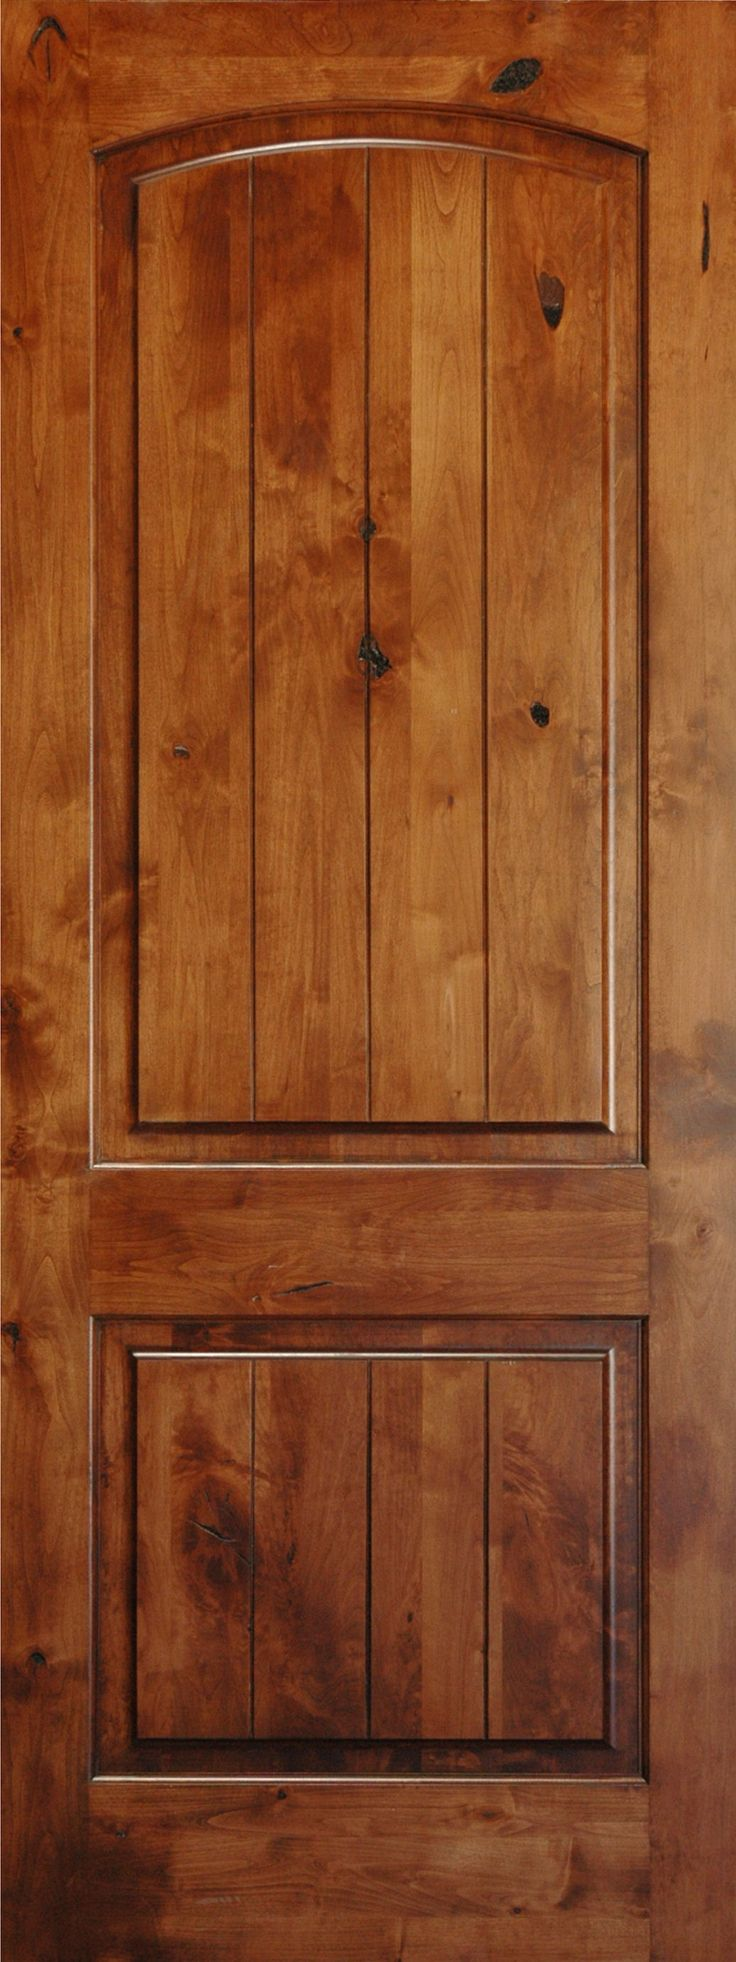 25 best knotty pine doors ideas on pinterest pine chairs framed art inspiration and welcome for Prehung hickory interior doors